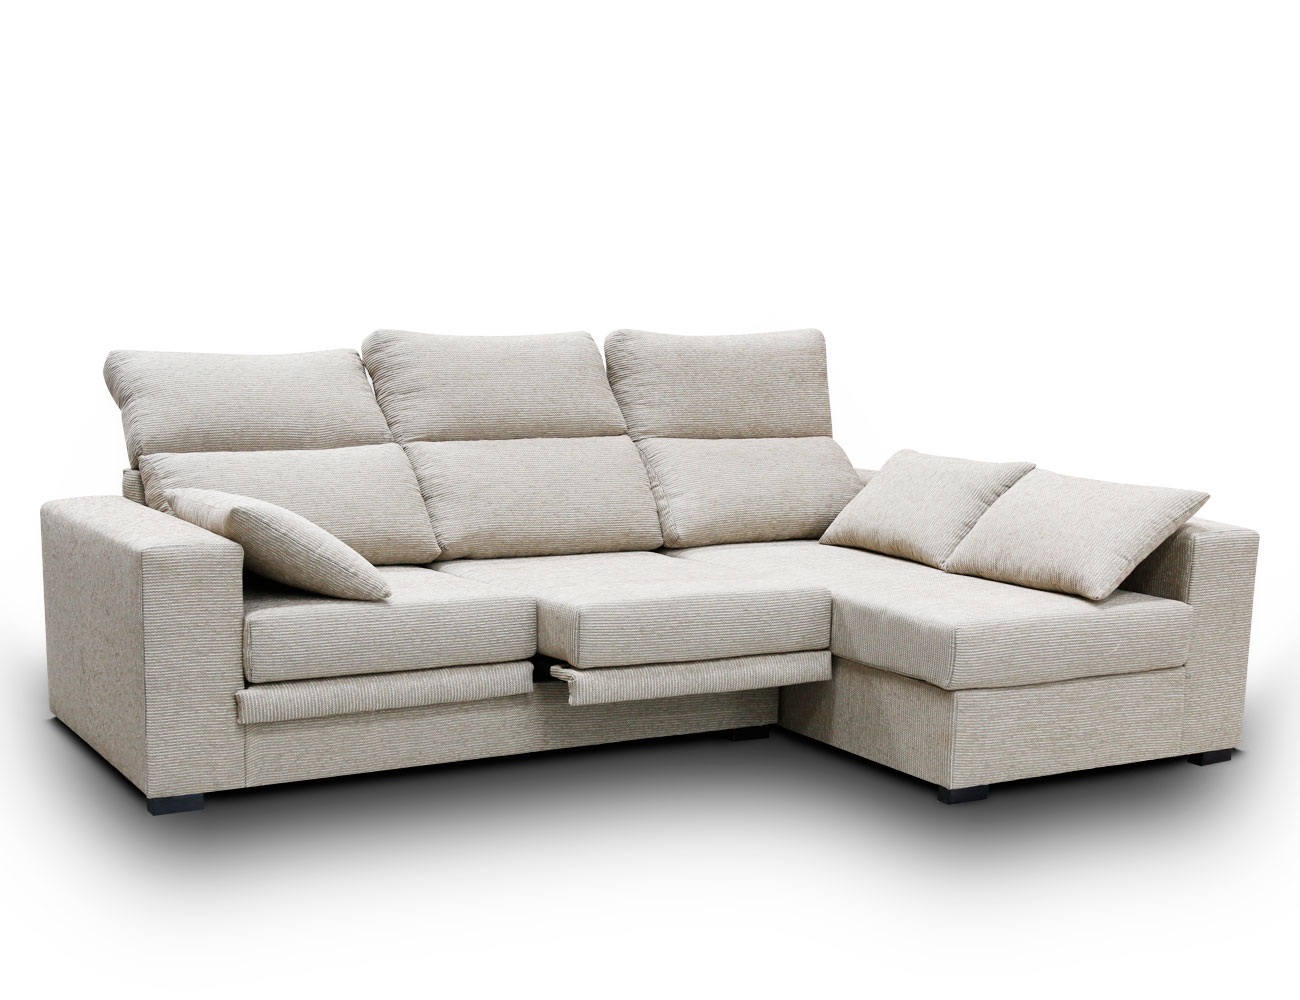 Sof chaiselongue con asientos extraibles y respaldos for Sofas reclinables economicos